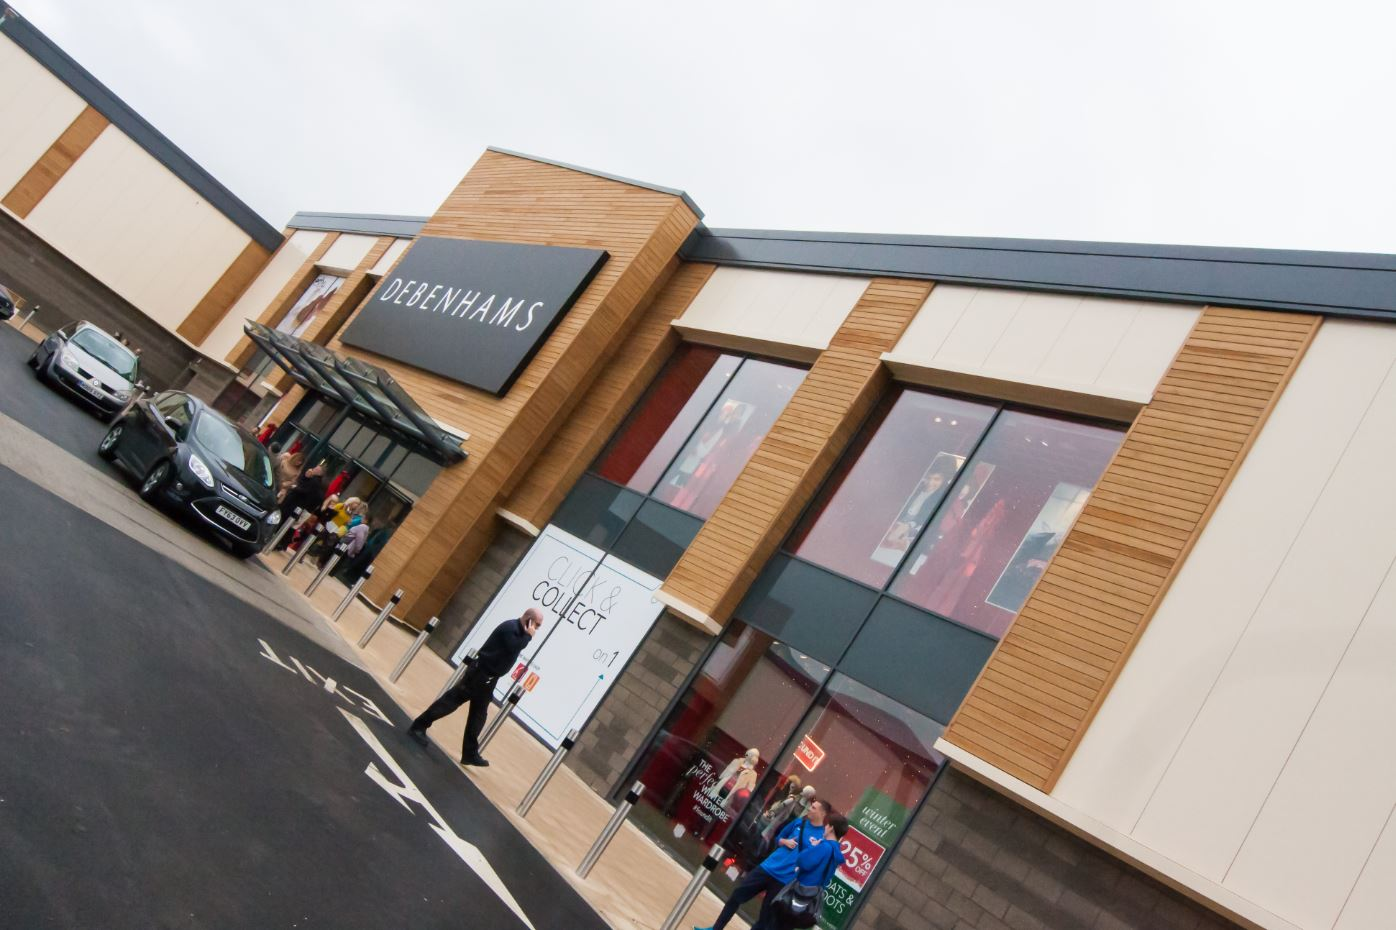 north lincolnshire retail park, scunthorpe retail park, boots, m&s, doncaster, adept engineers, leeds engineer